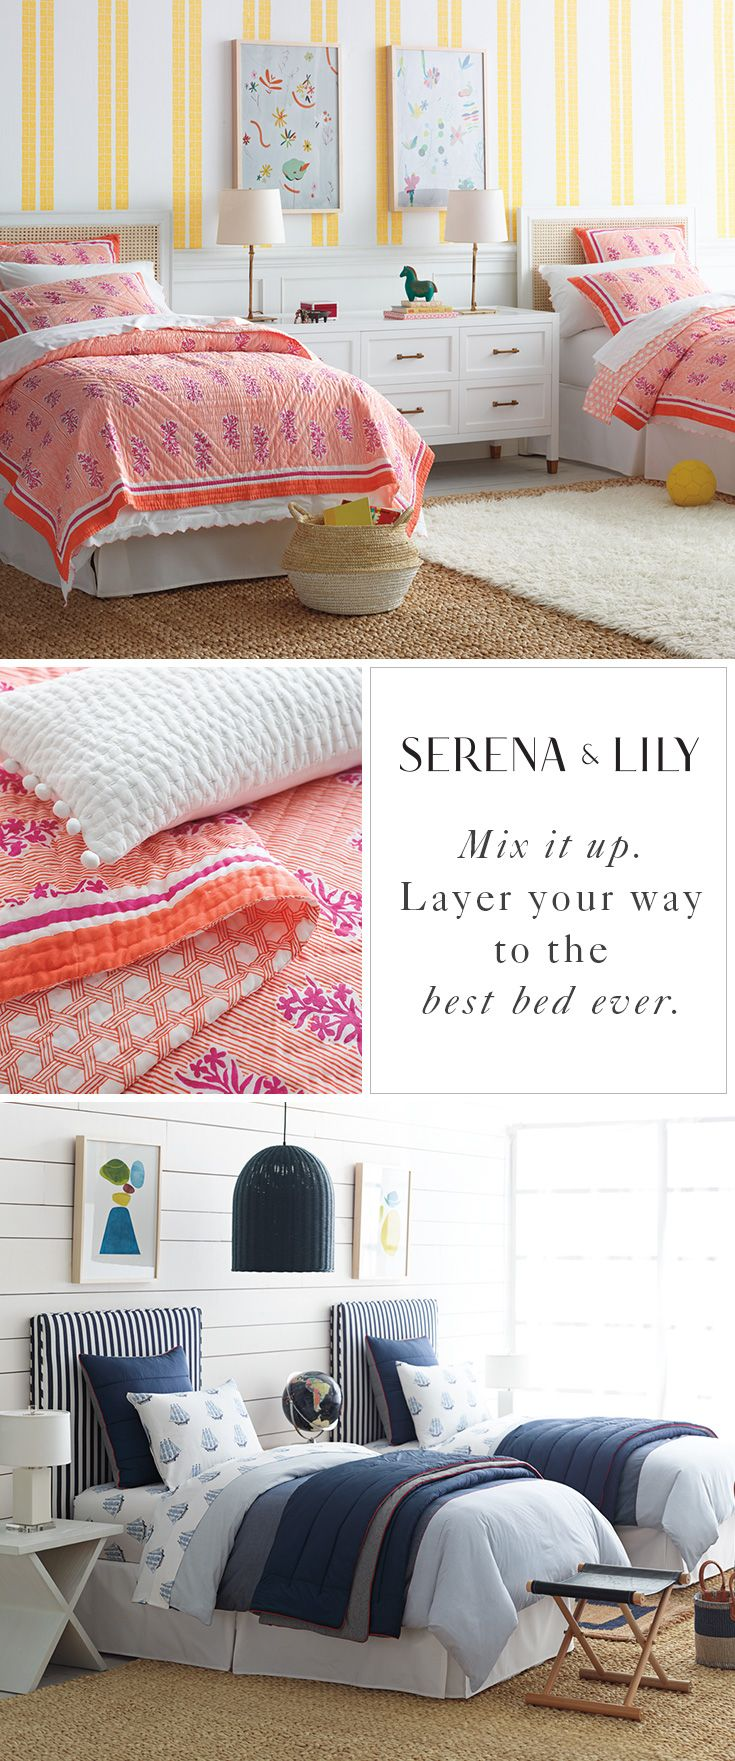 Color and pattern that you love as much as they do! Find the perfect bedding for you and your little ones today at Serena & Lily.